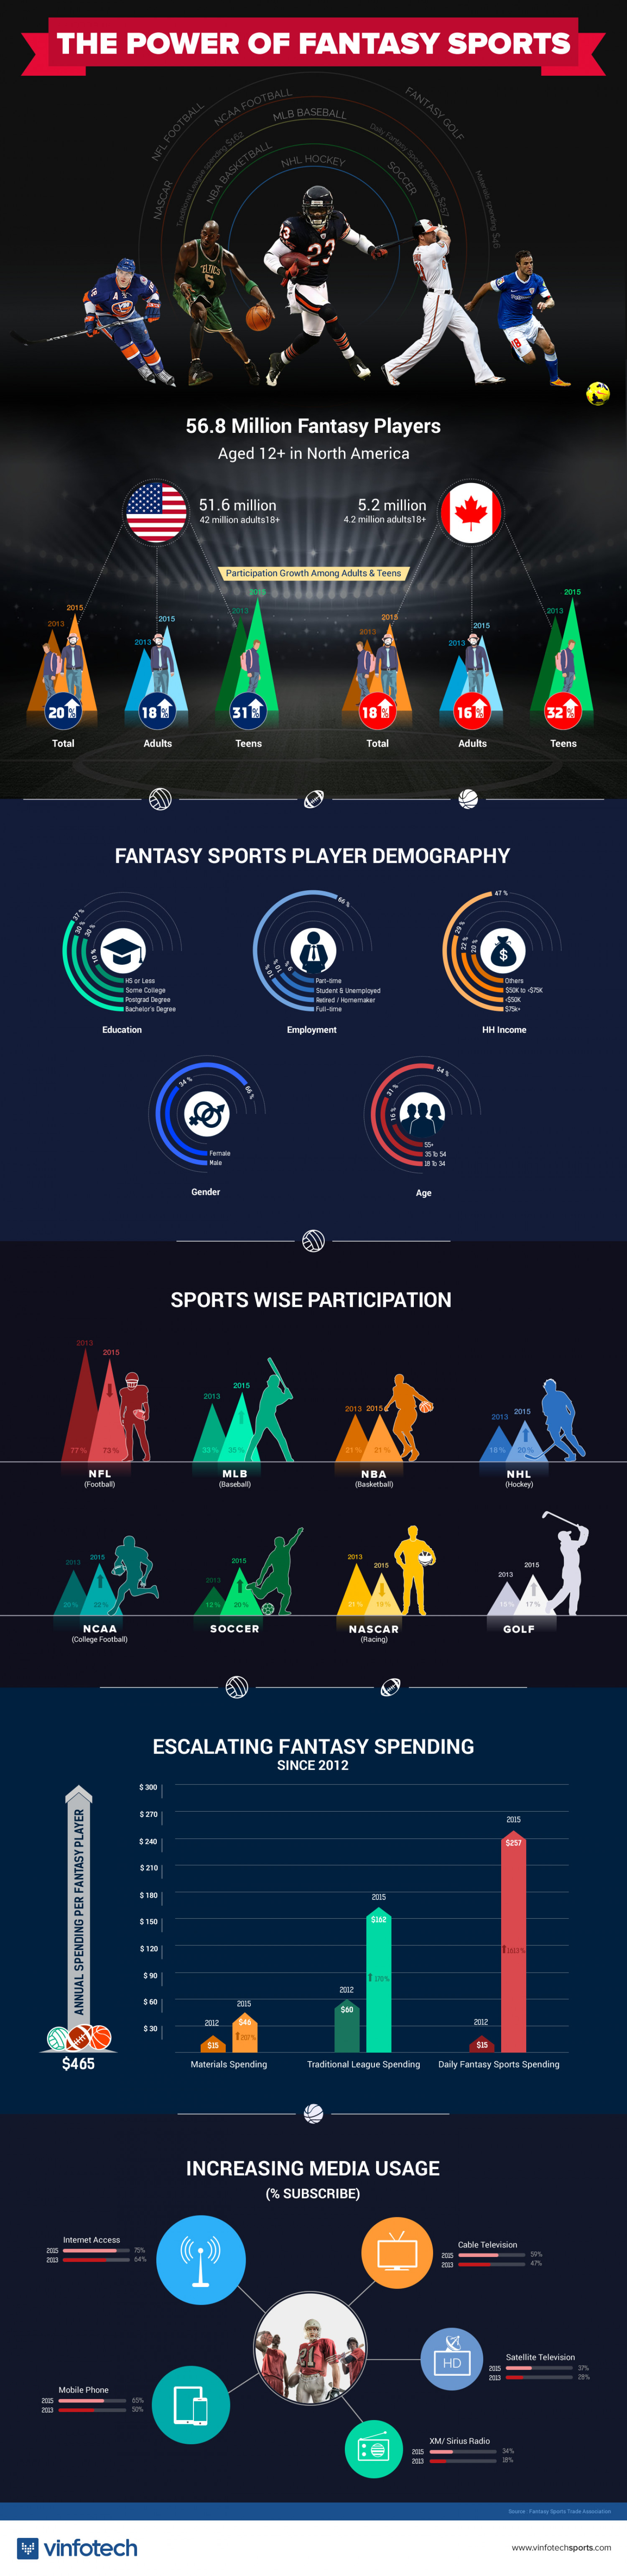 THE POWER OF FANTASY SPORTS Infographic